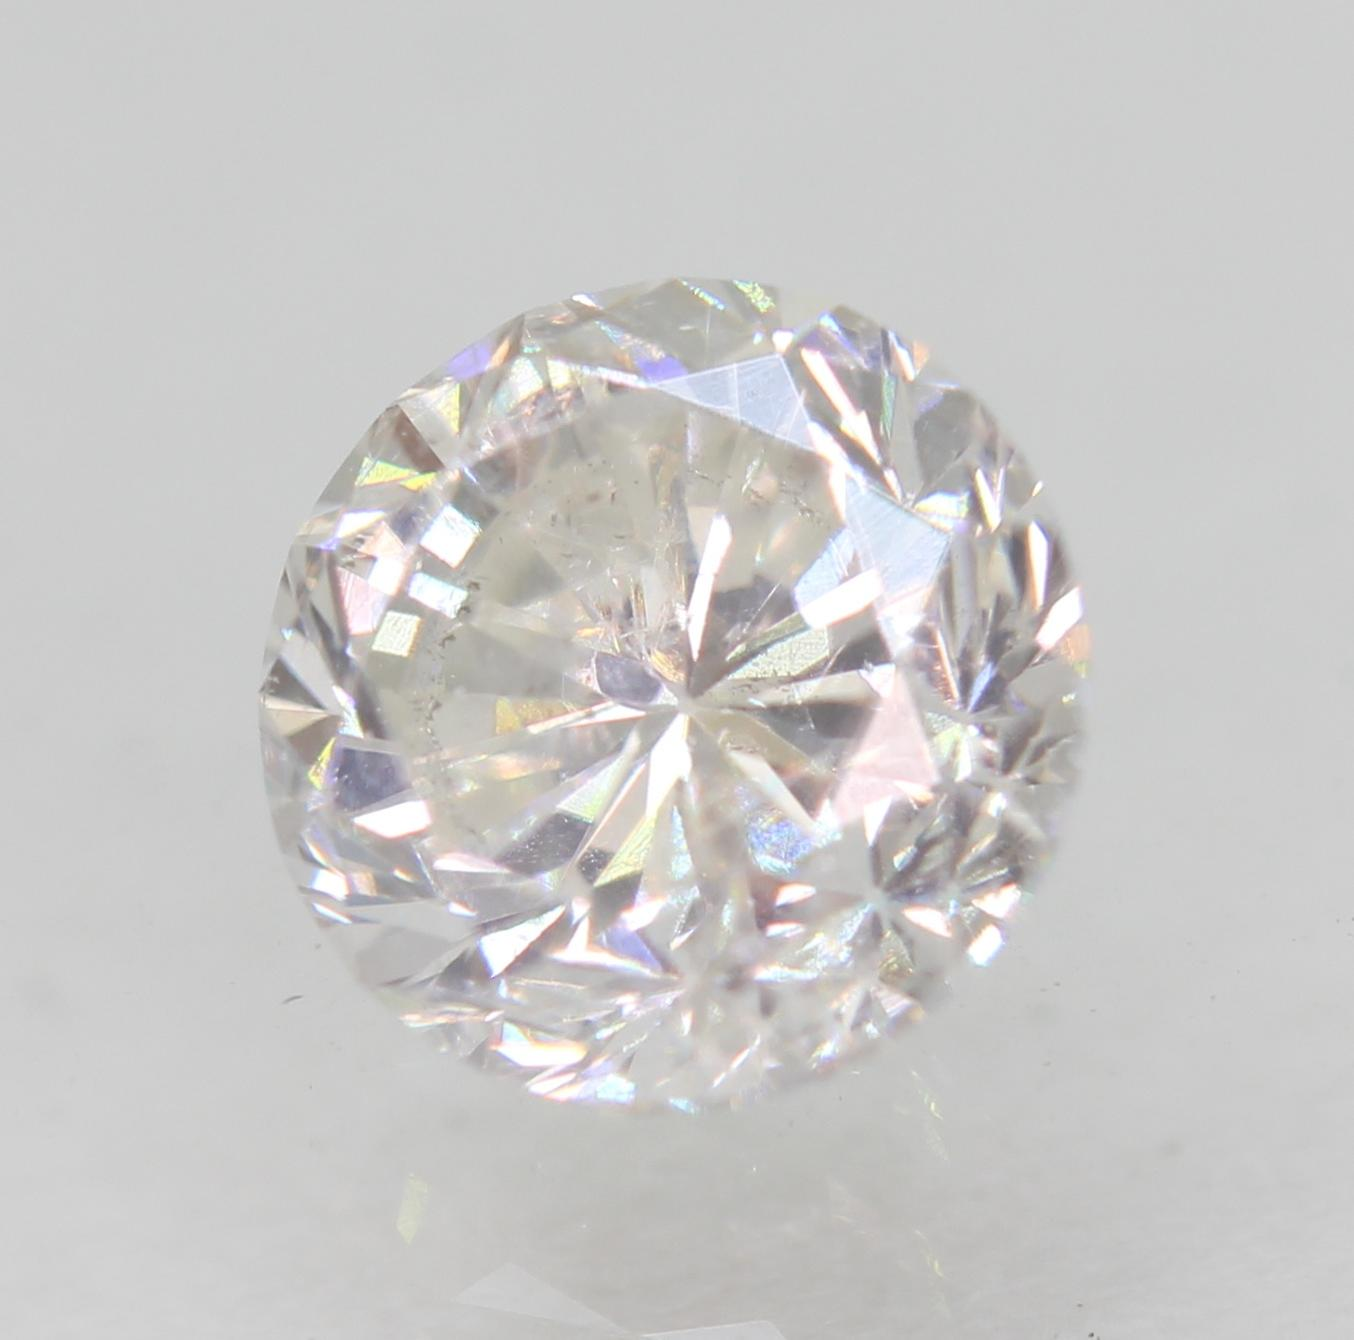 Certified 0.71 Carat E VS2 Round Brilliant Enhanced Natural Loose Diamond 5.38mm